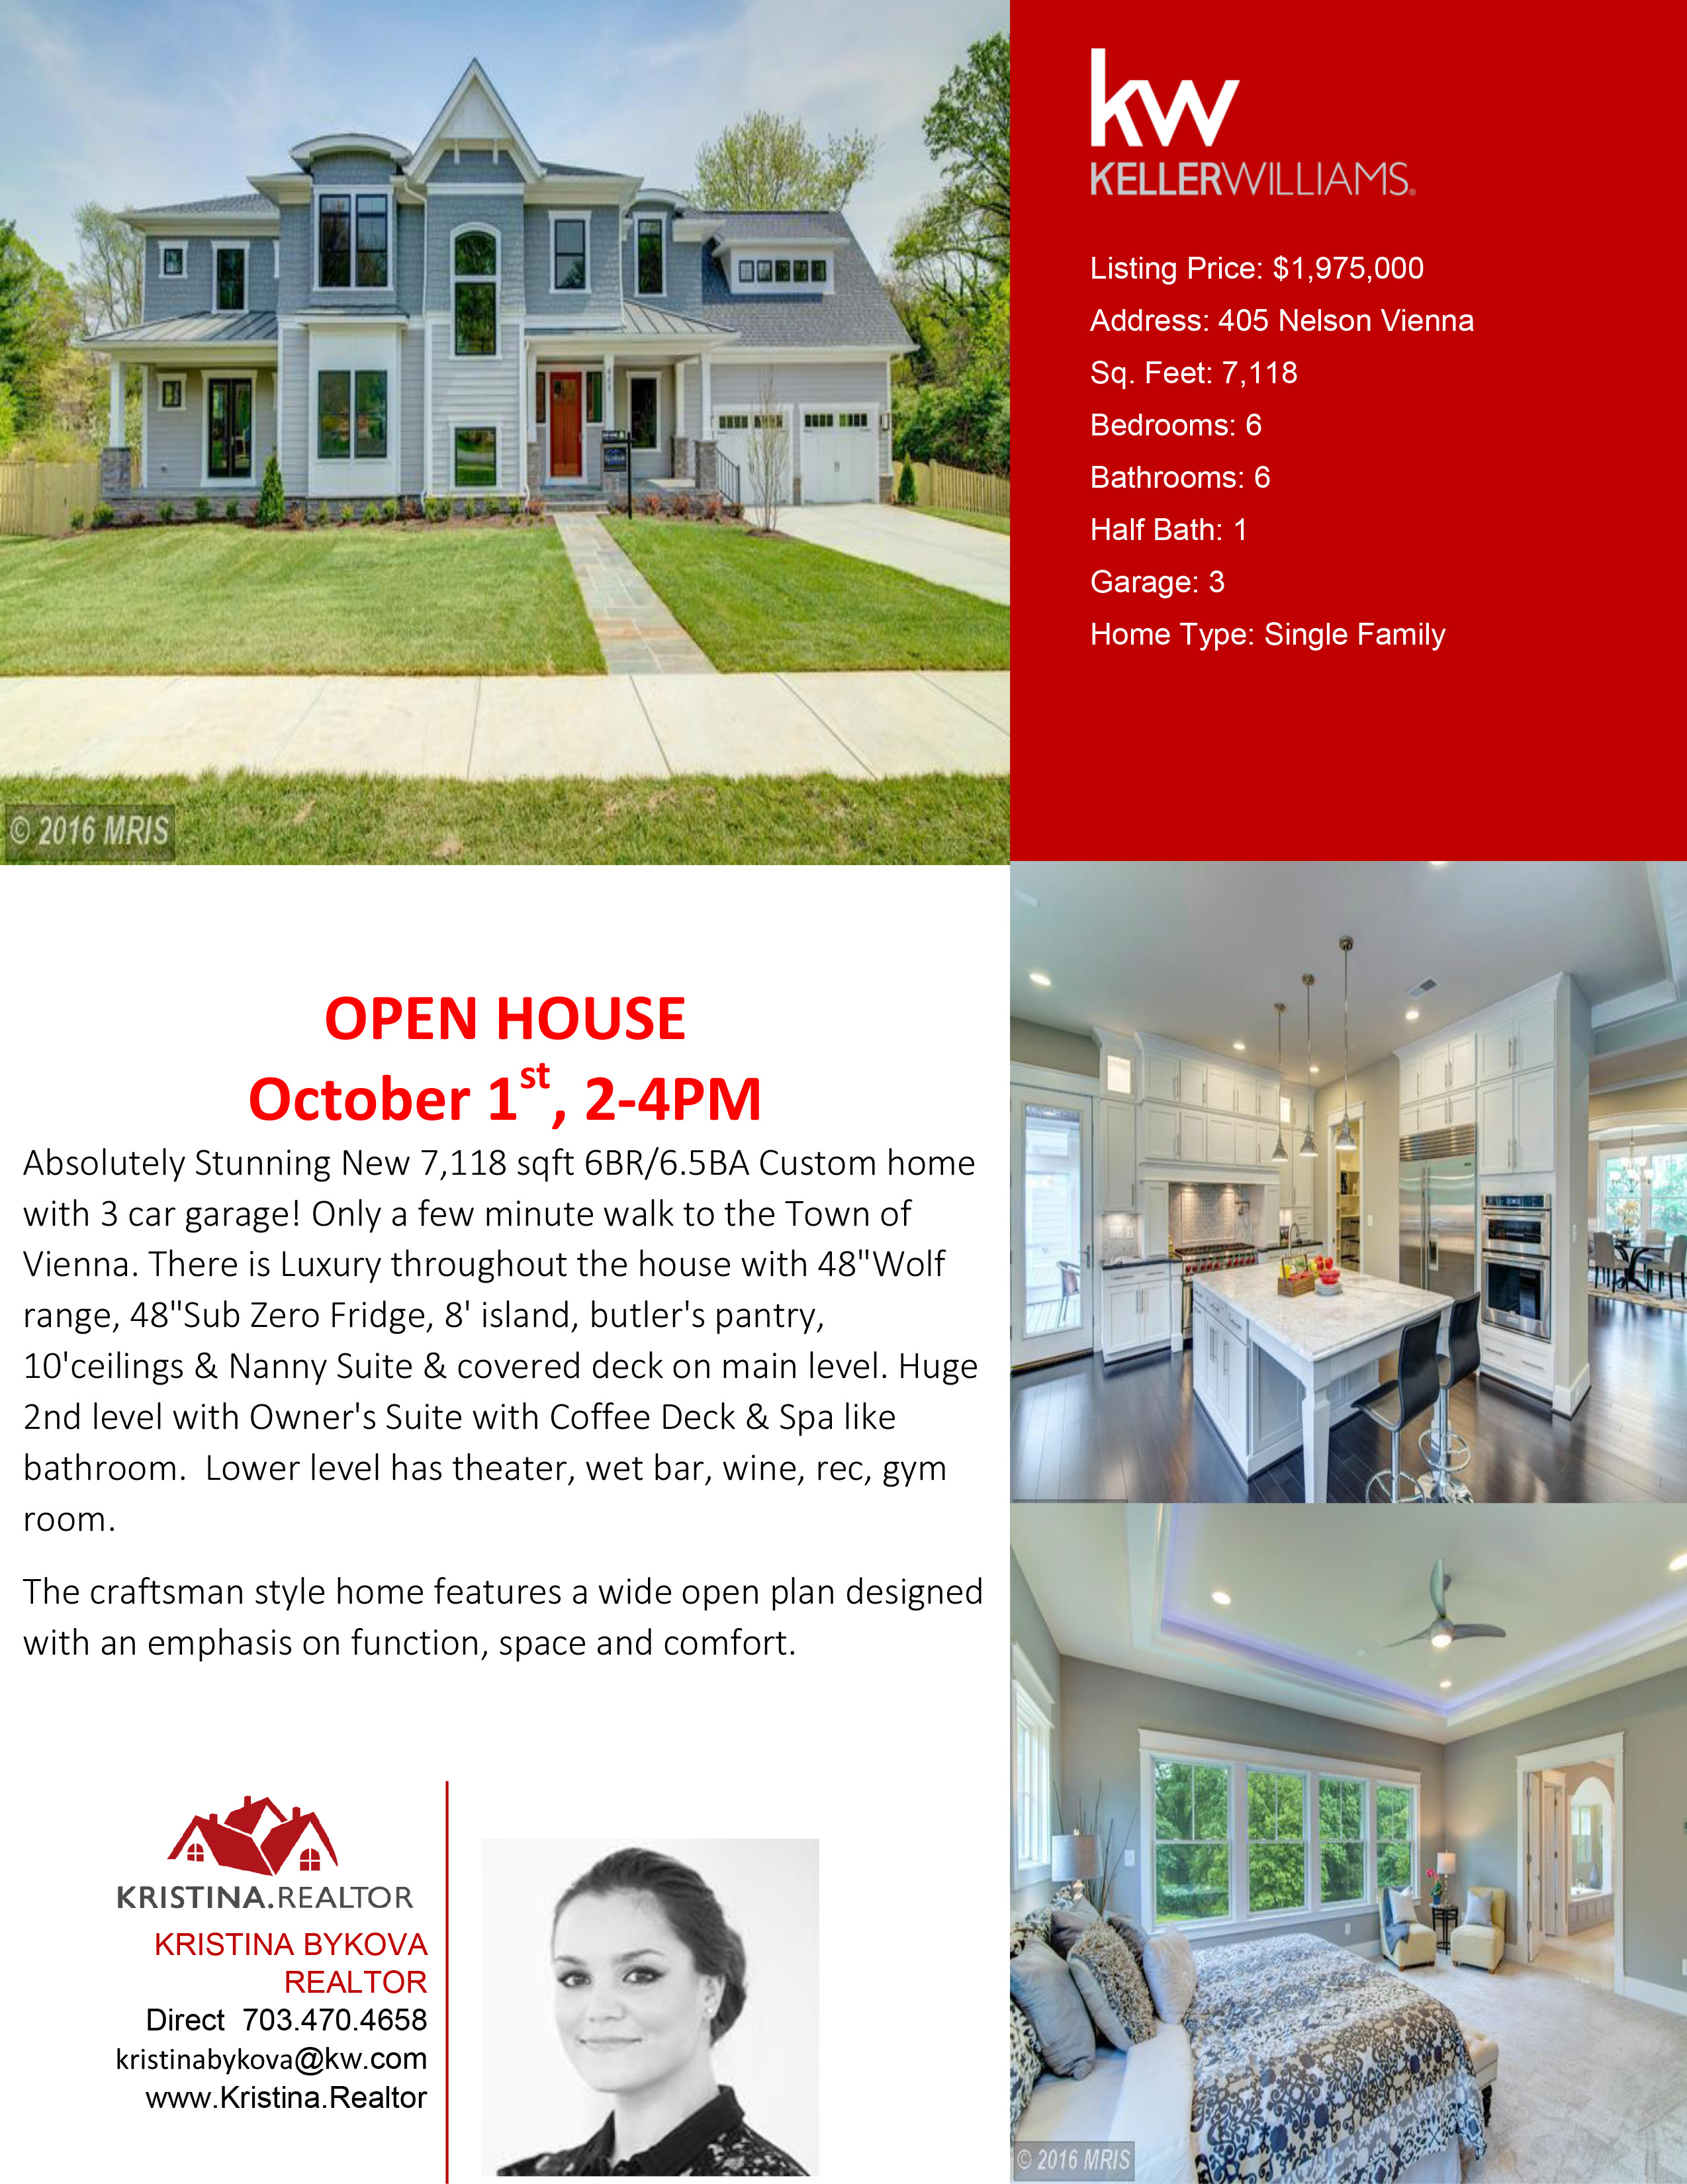 homes for near you kristina realtor open house sat 10 1 2 4pm new home in vienna